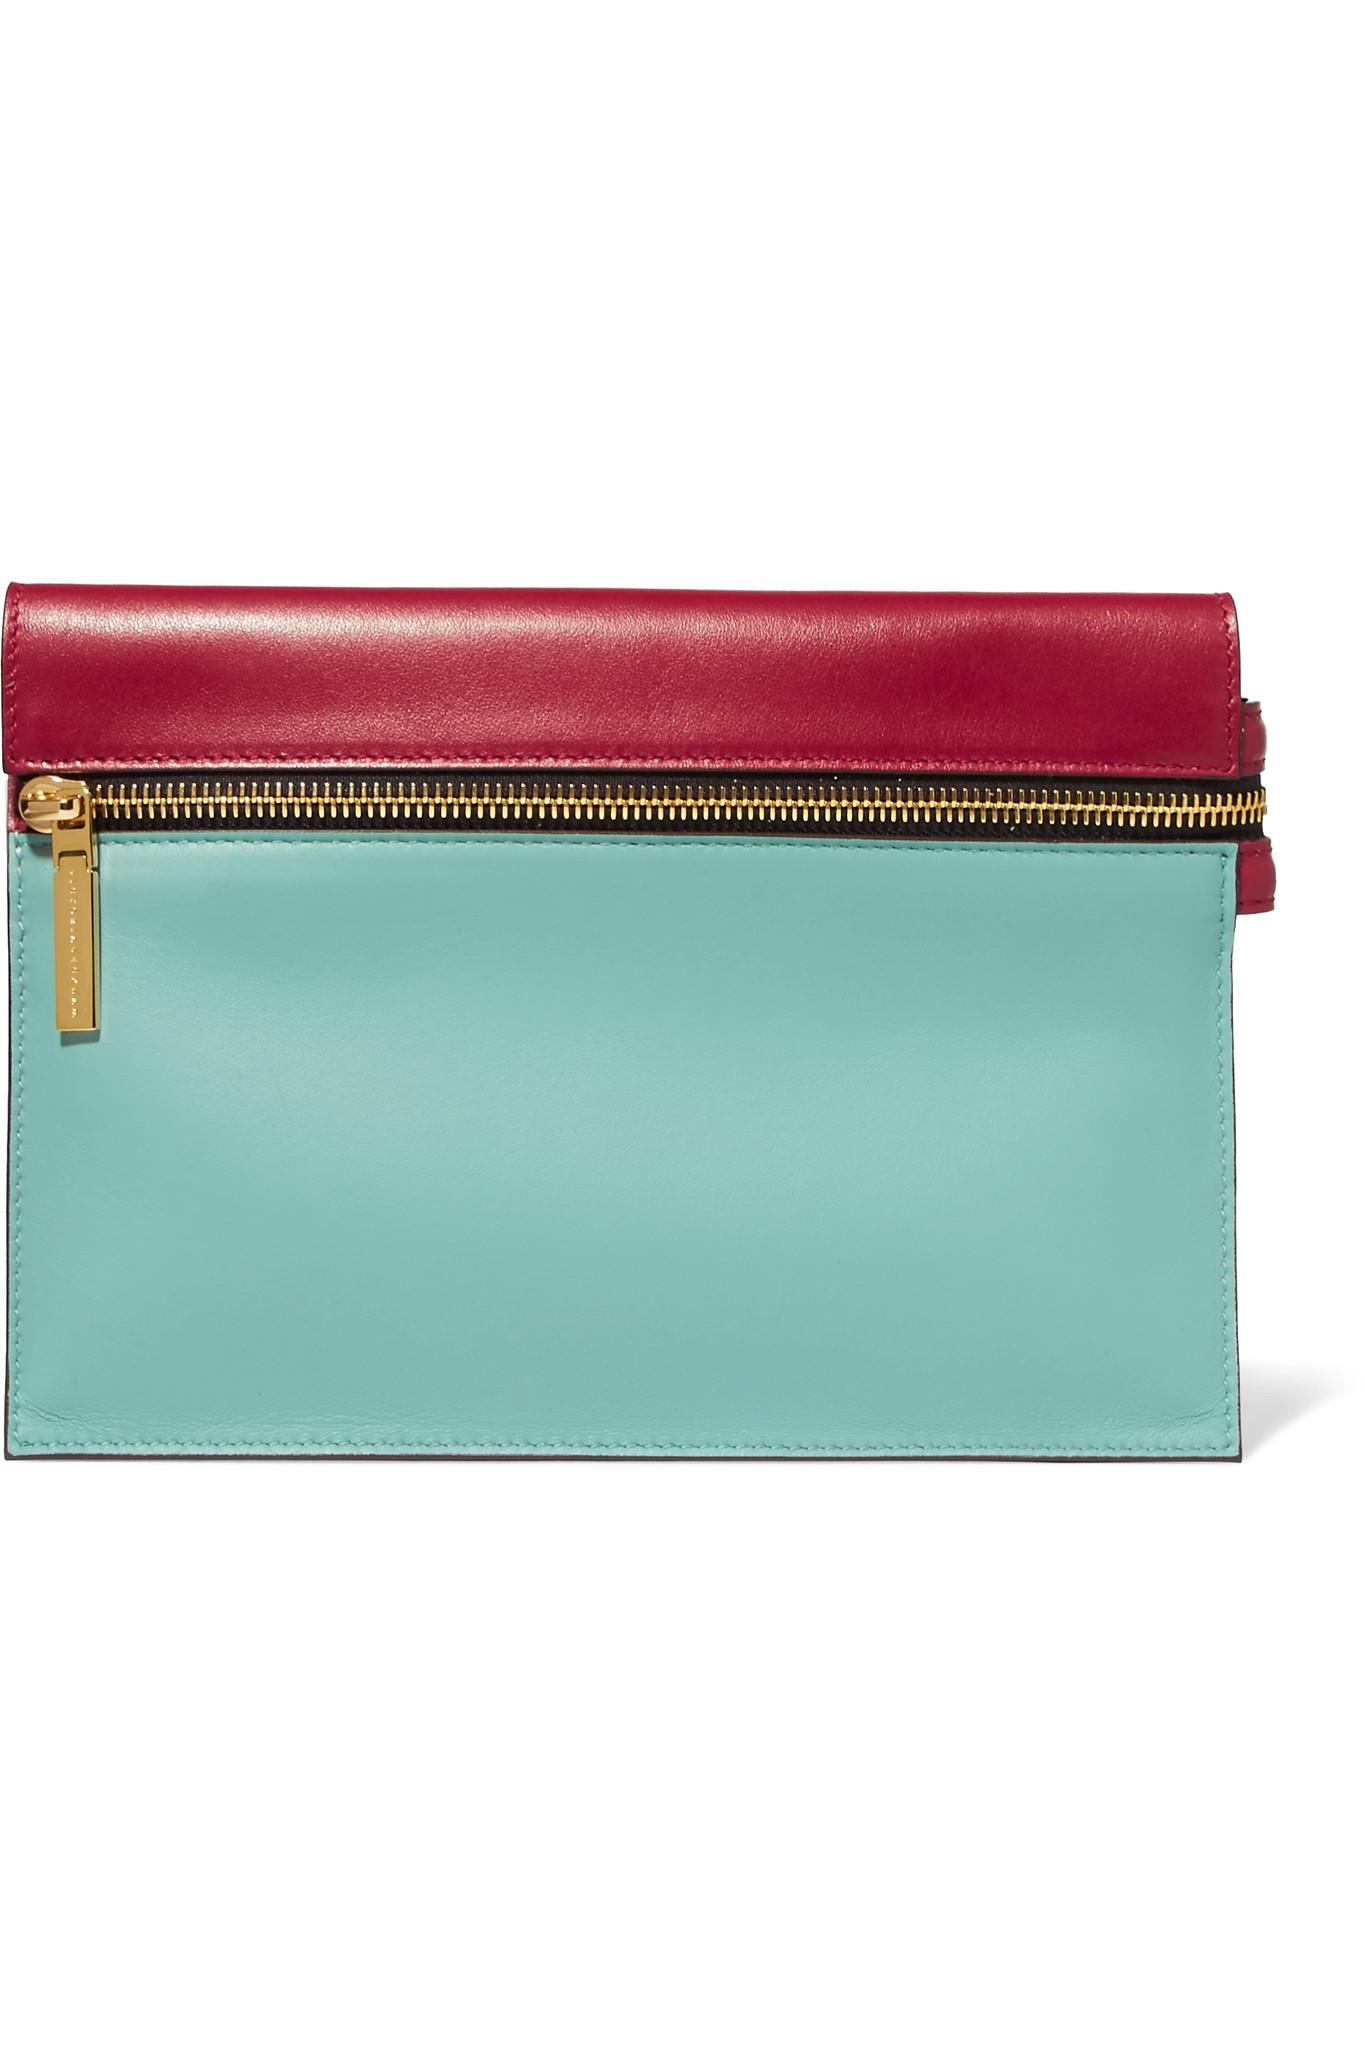 Two-tone Leather Cardholder - Sky blue Victoria Beckham qTOILLU